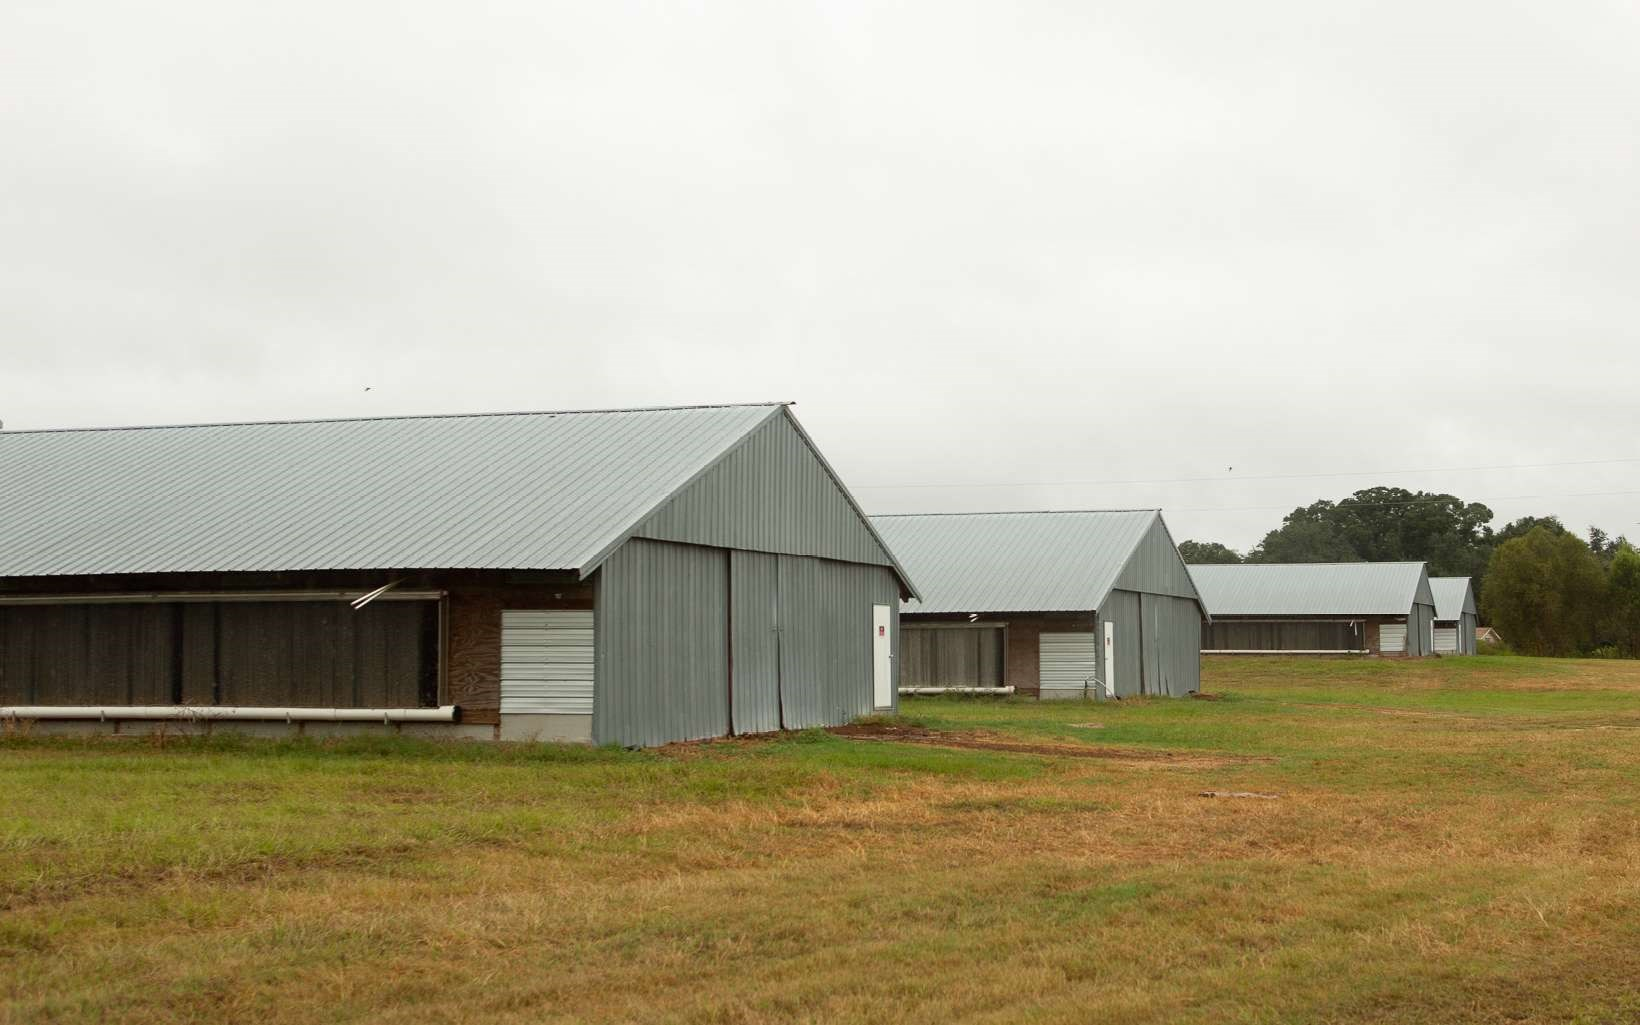 BROILER FARM WITH 4 X 40 X 500 POULTRY BARNS